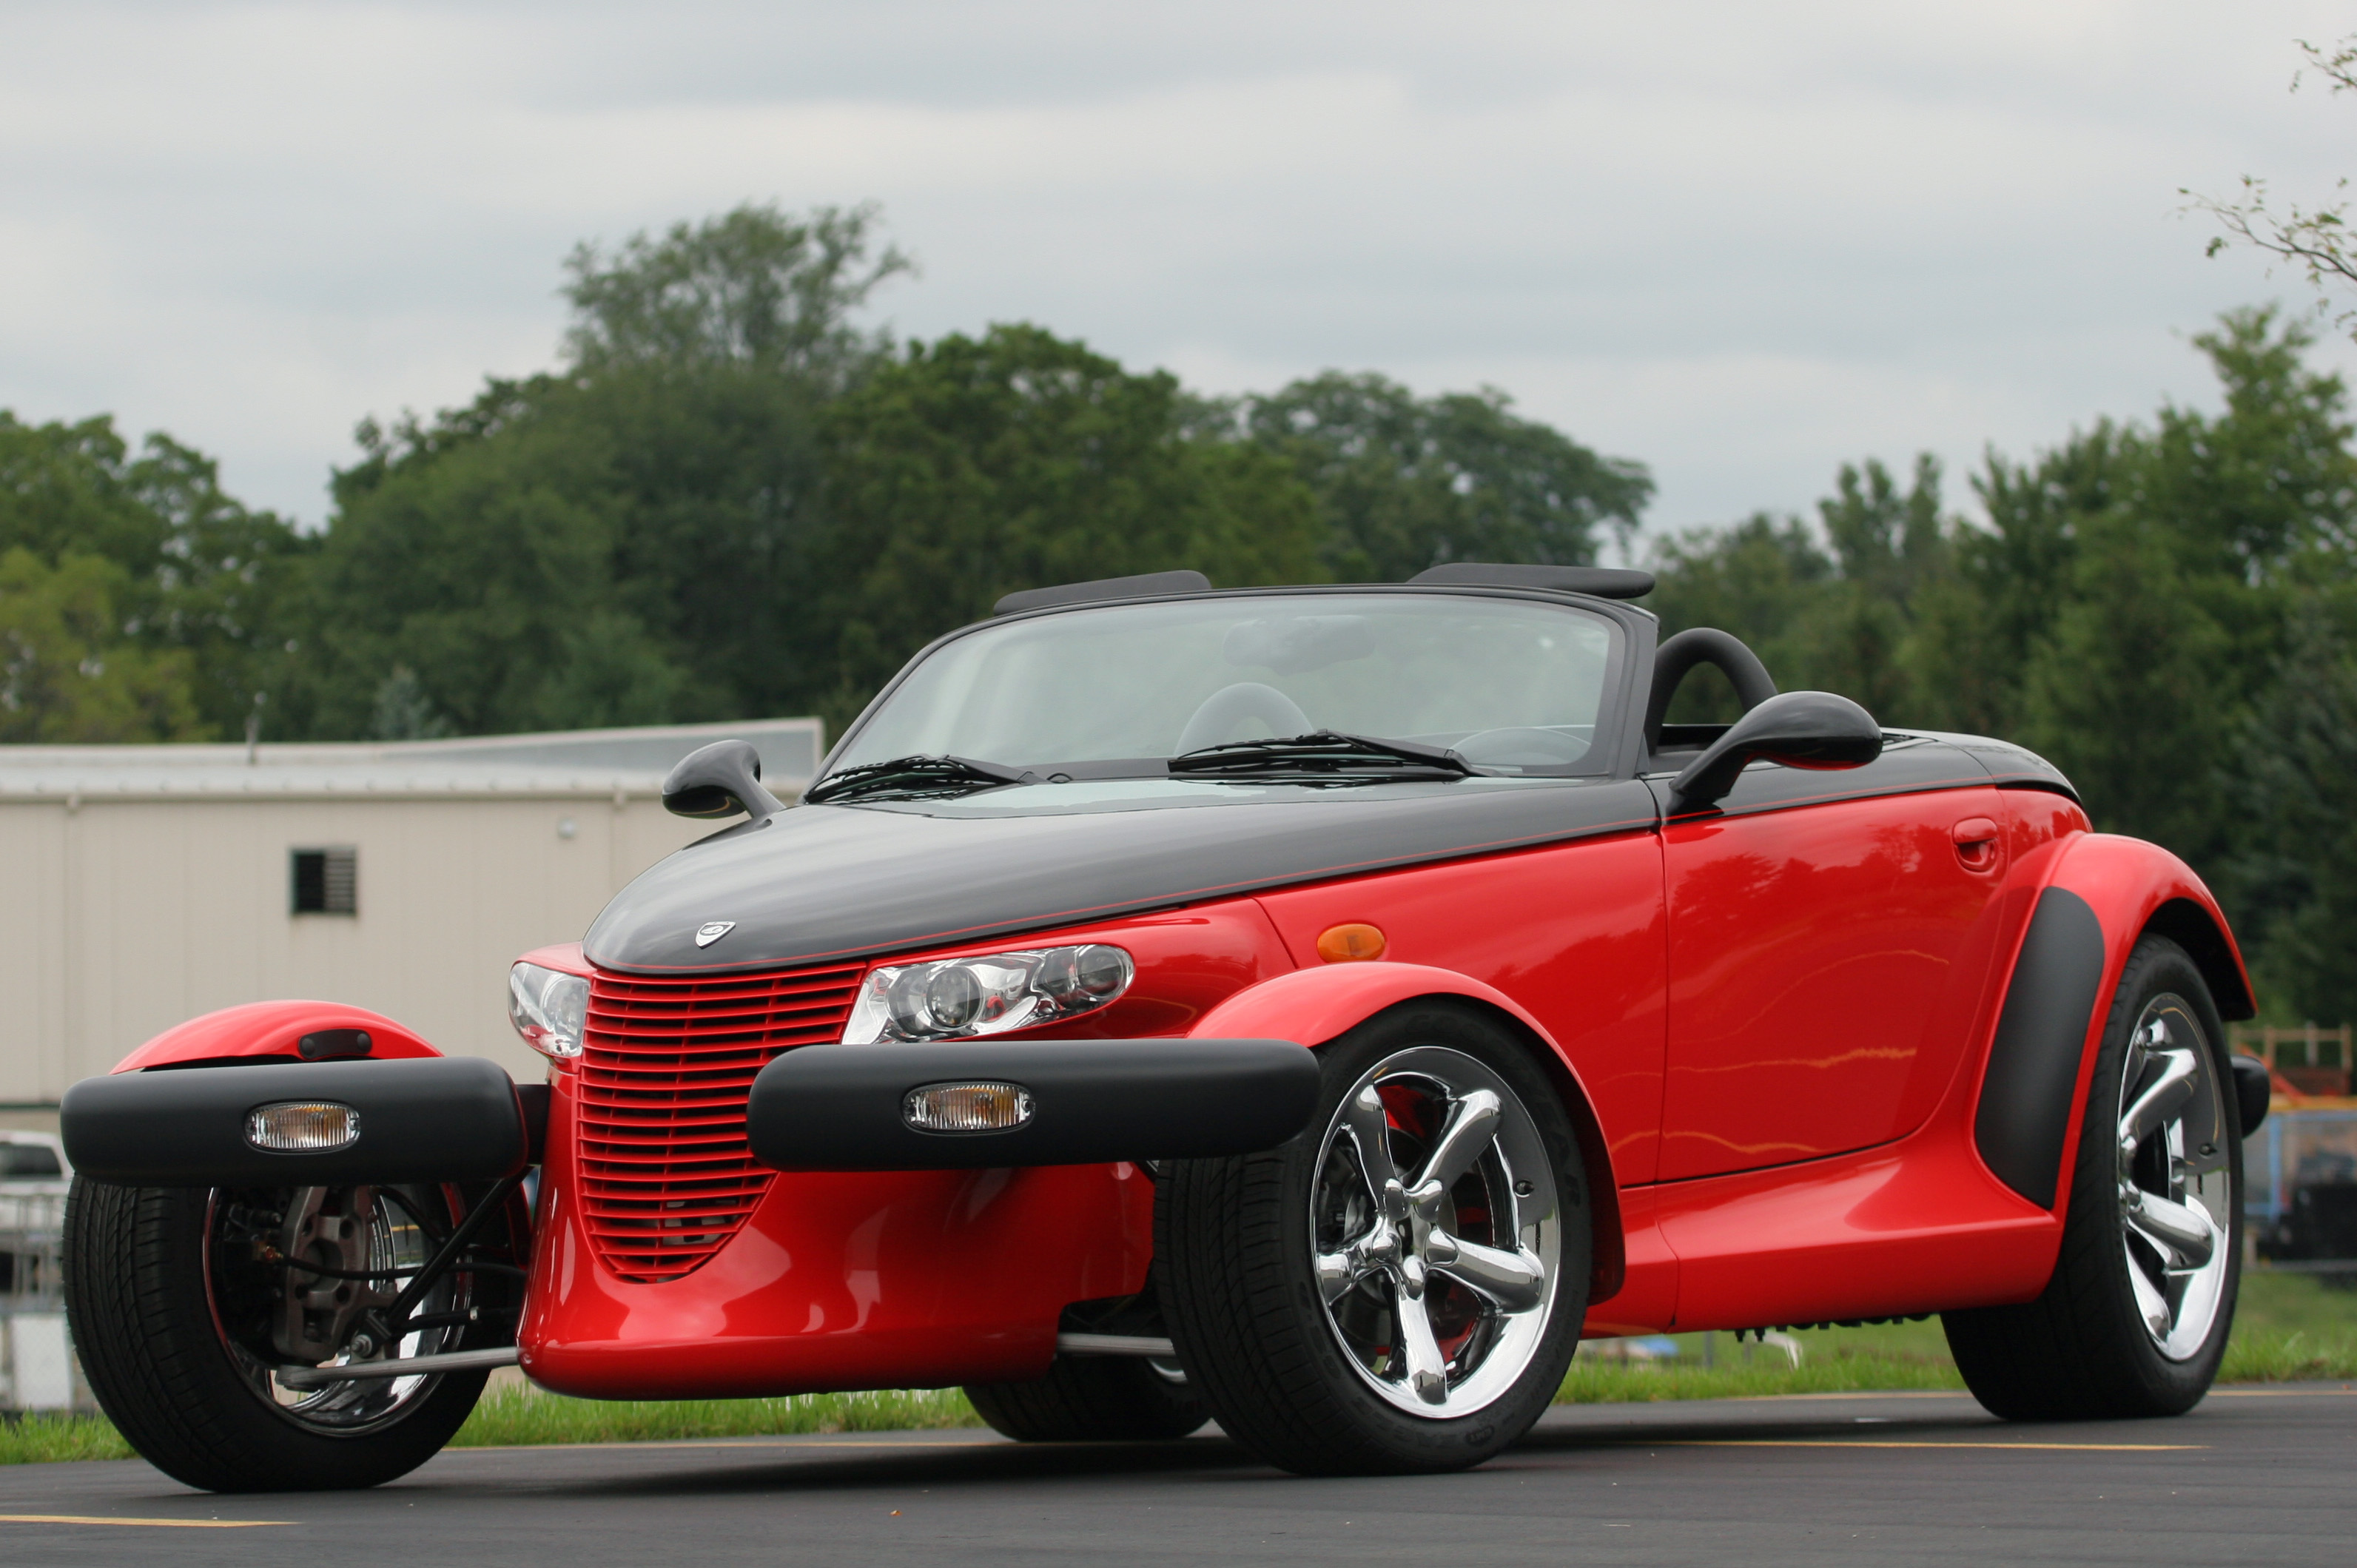 Lowrider Car Hd Wallpaper 2000 Plymouth Prowler Hd Wallpaper Background Image